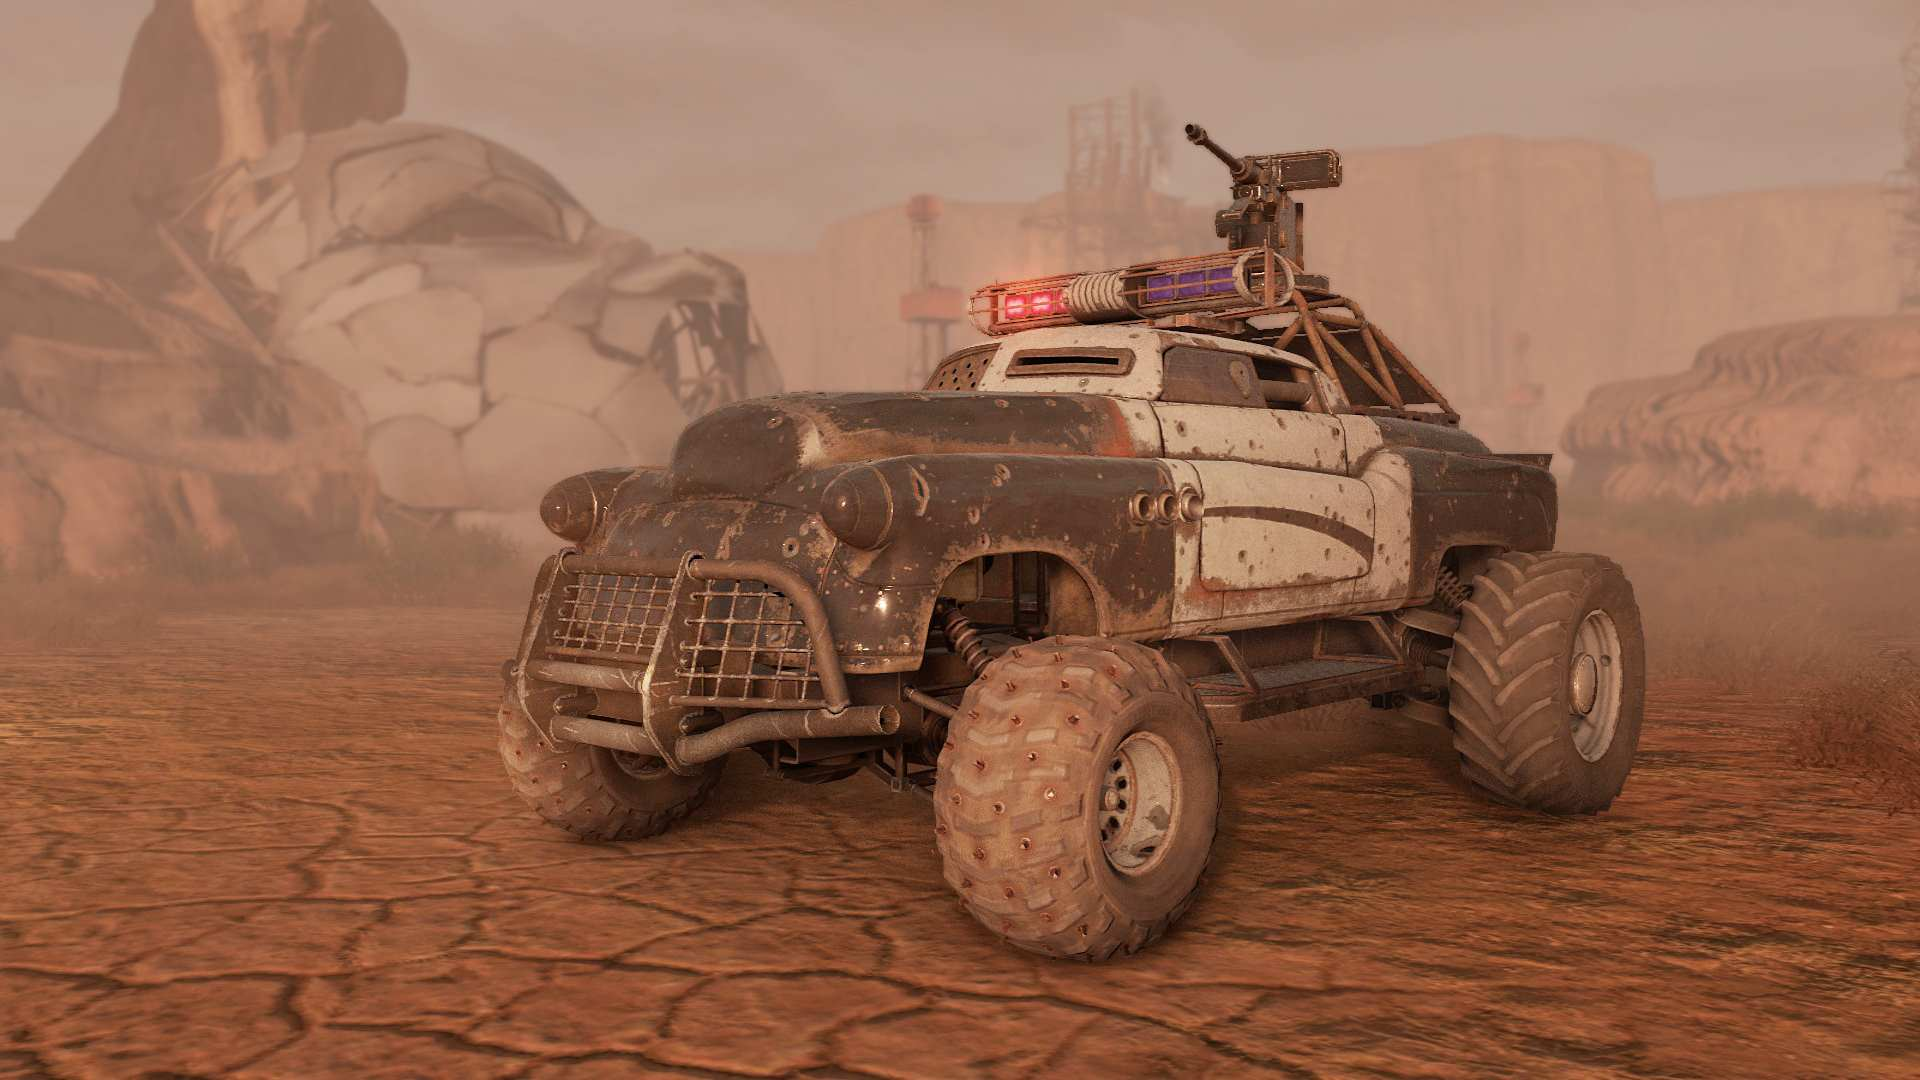 Cop Car Wallpaper Crossout Law Of The Wasteland Pack On Ps4 Official